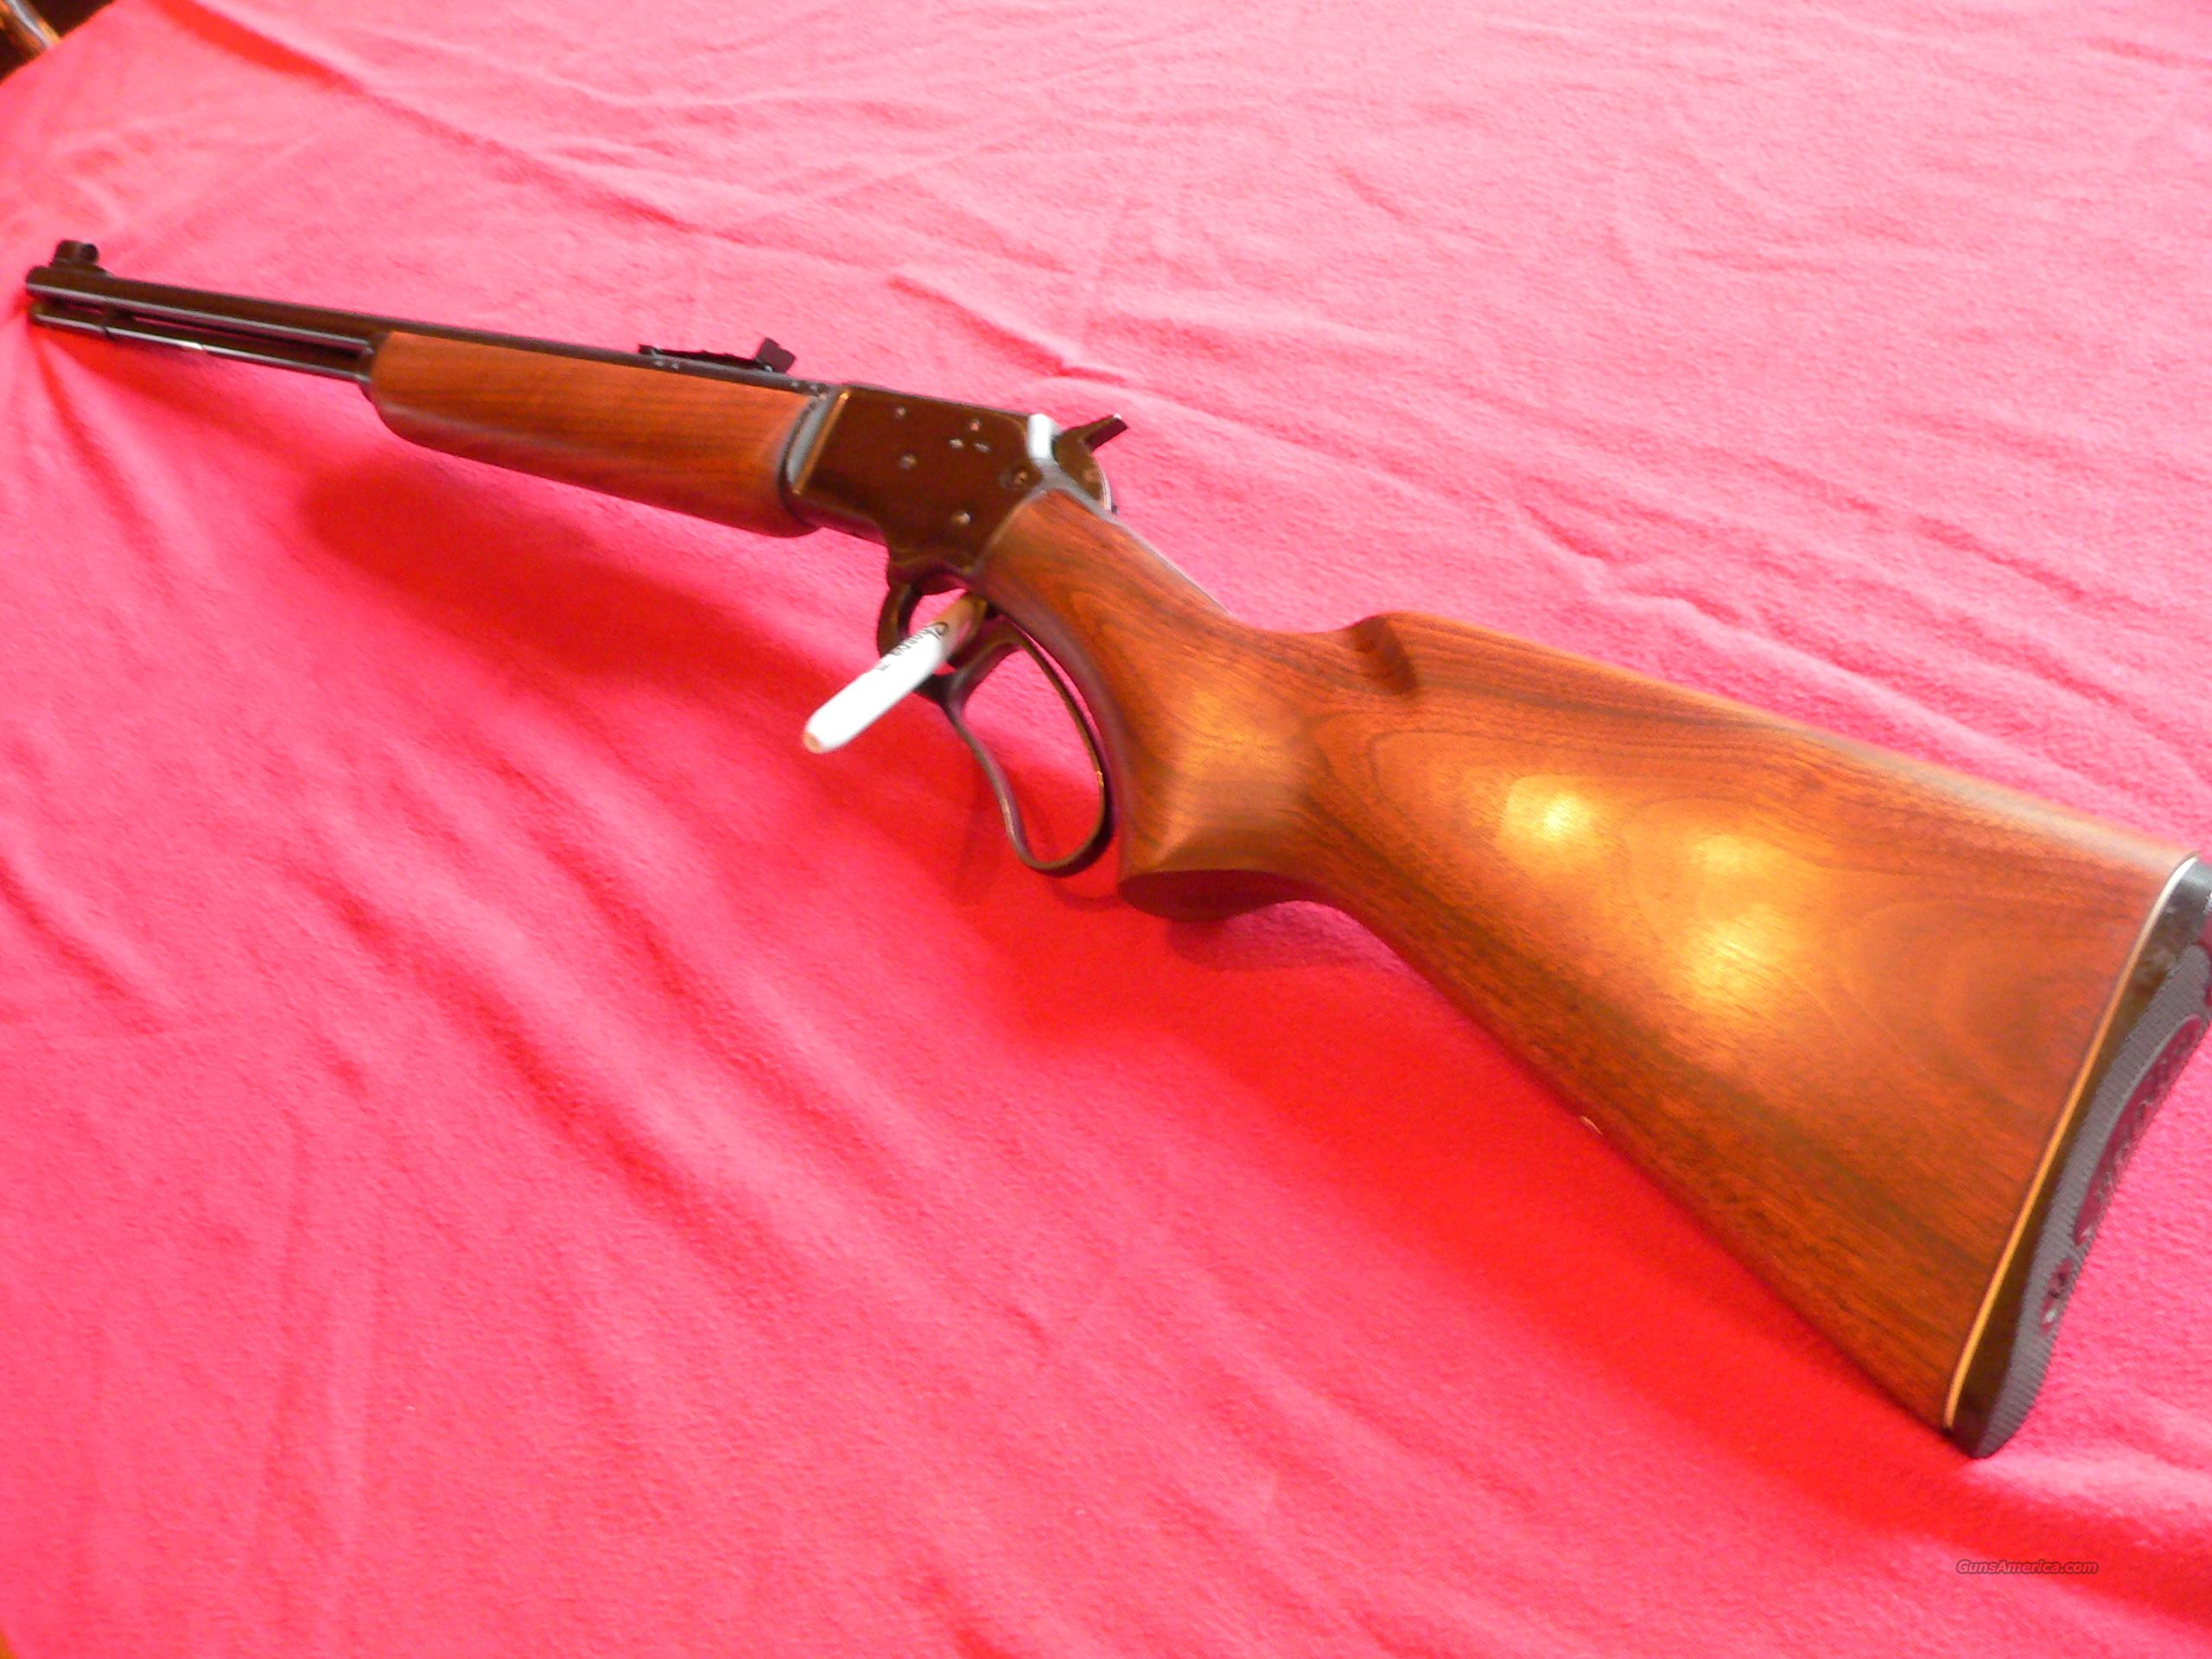 Marlin Model 39A (early model mfg. in 1955) cal. 22LR Lever-action Rifle   Guns > Rifles > Marlin Rifles > Modern > Lever Action